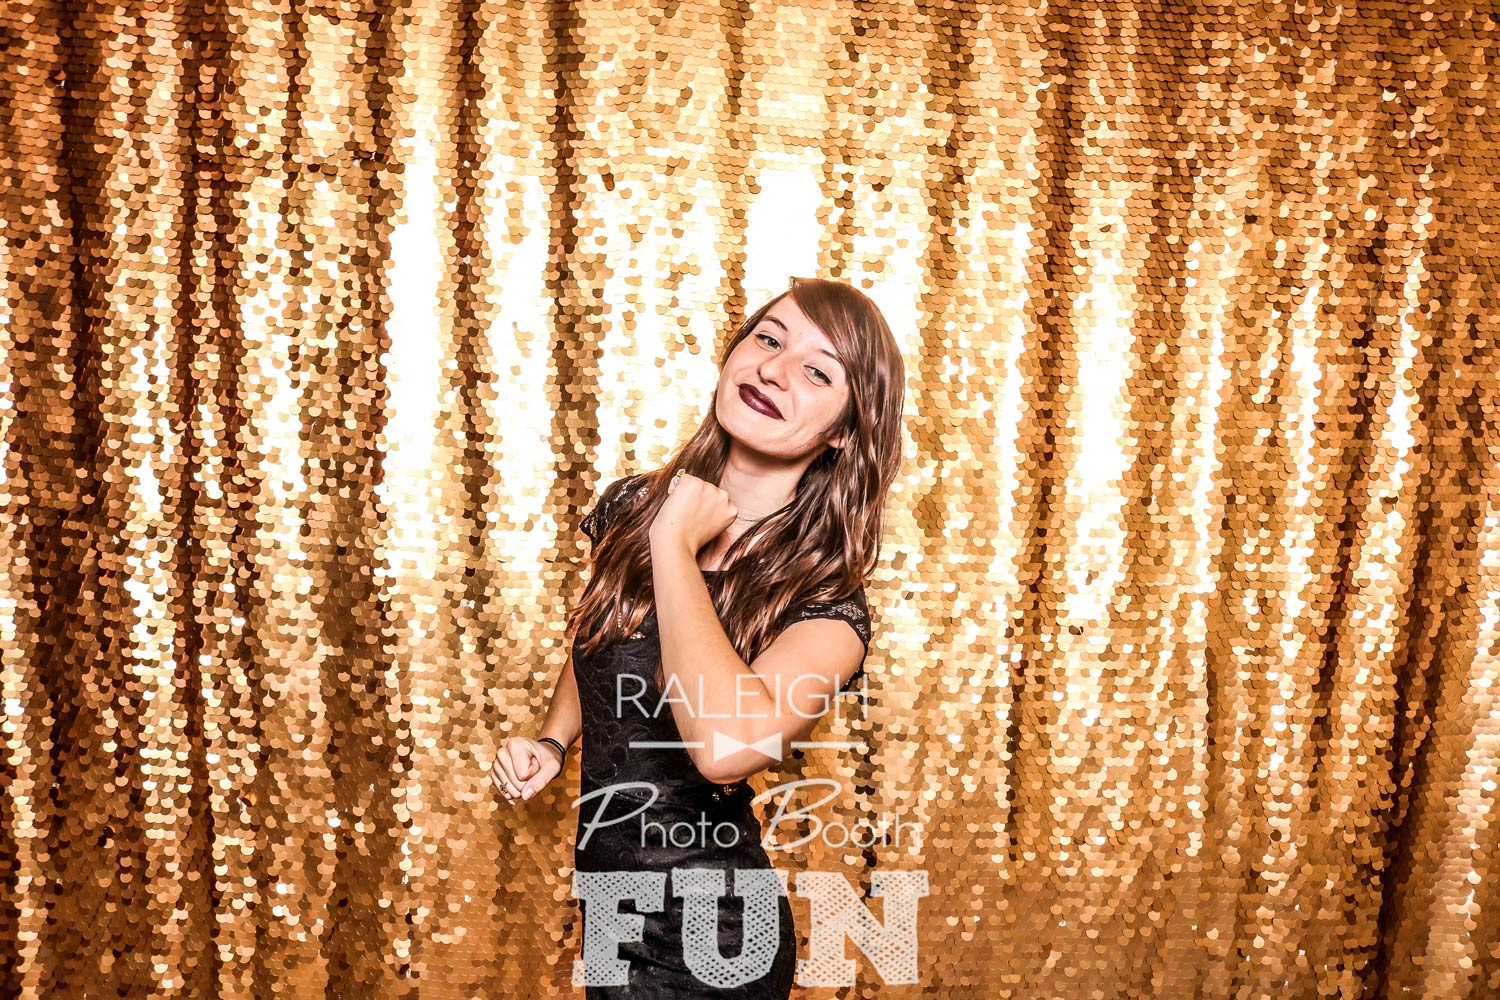 Gold-Sequin-Raleigh-Photo-Booth-1